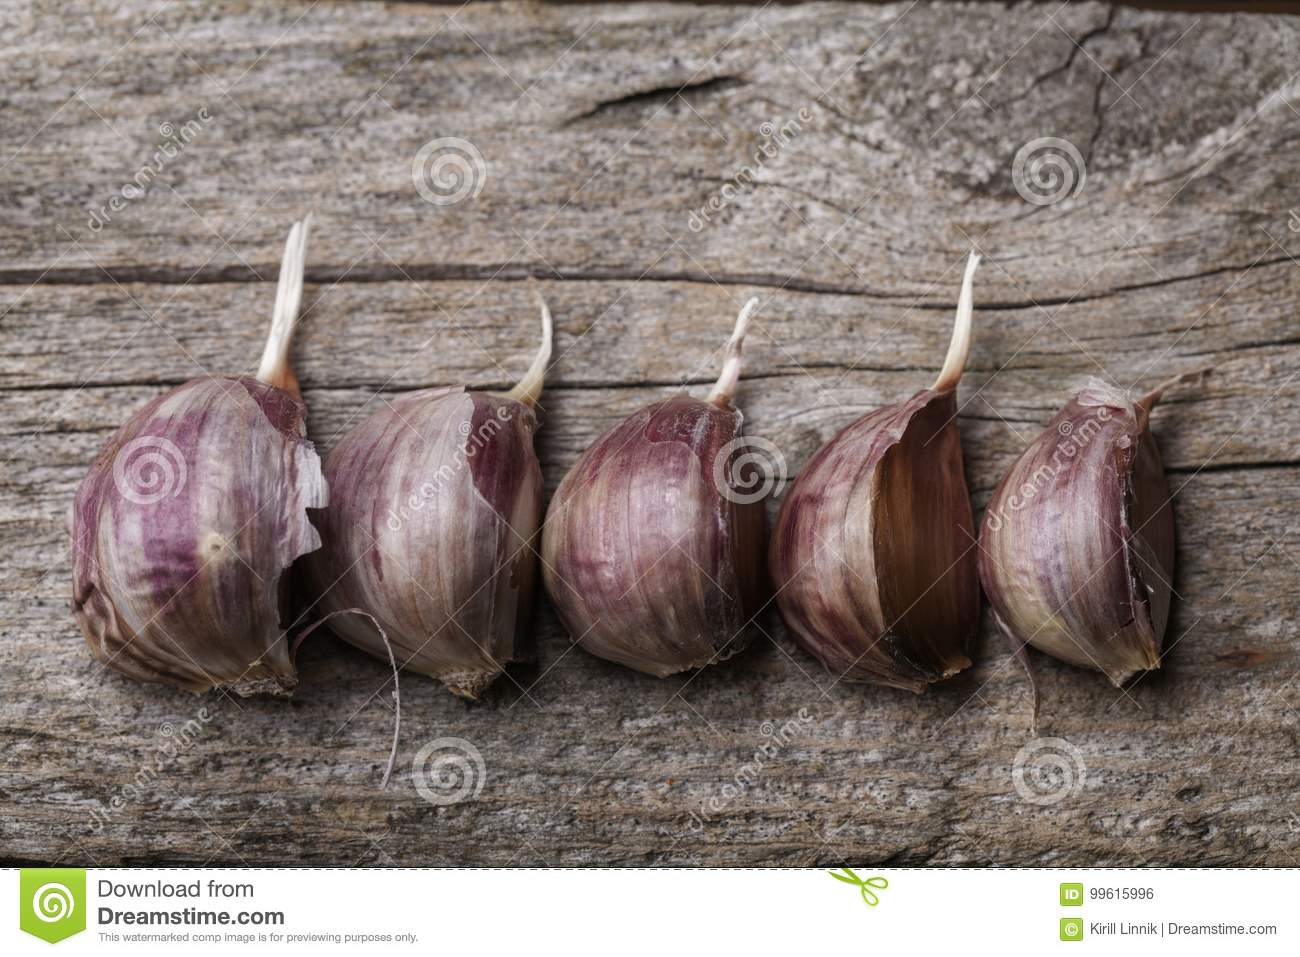 Download Garlic on the table stock photo. Image of ingredient - 99615996